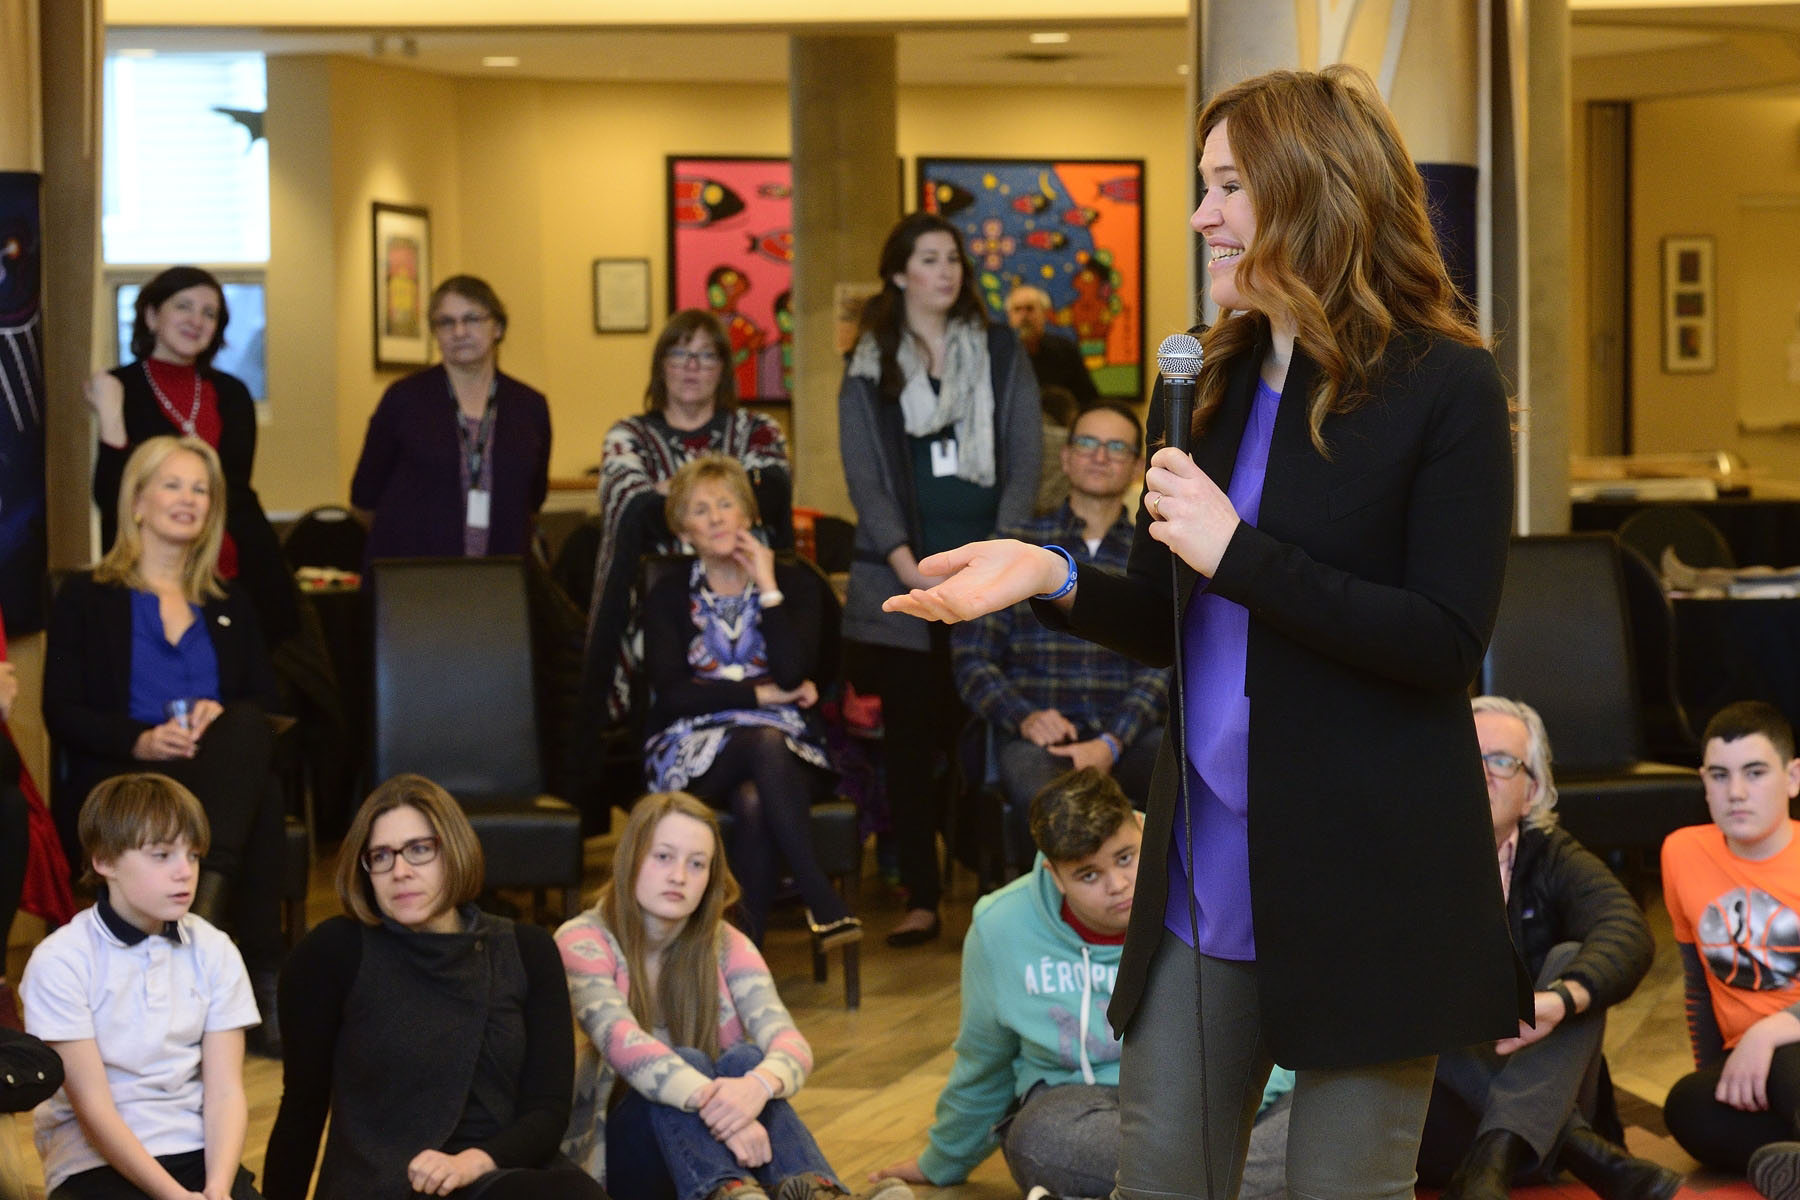 Clara Hughes shared with the youth some of the things that she feels grateful for.